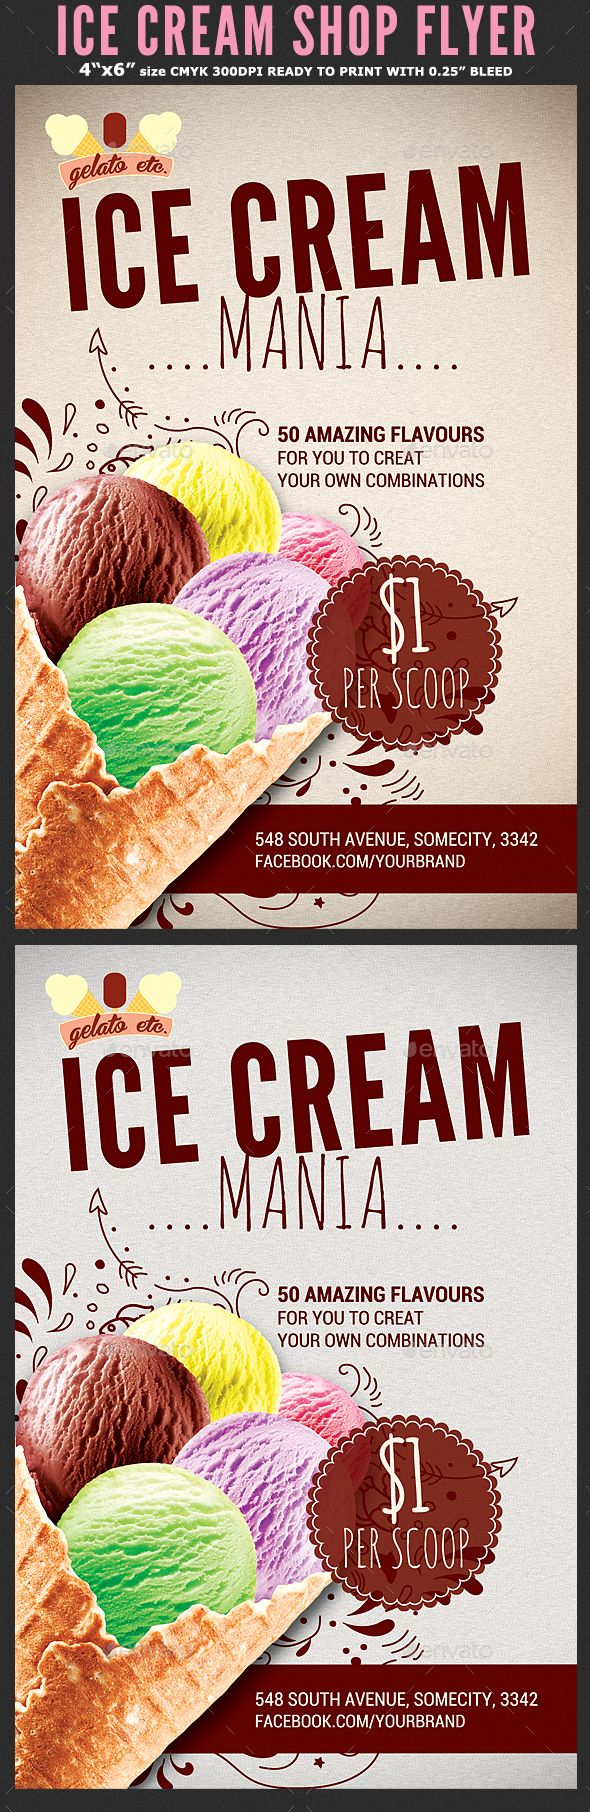 Ice Cream Shop Promotion Flyer Template - Flyers Print Template PSD. Download here: http://graphicriver.net/item/ice-cream-shop-promotion-flyer-template/16711633?s_rank=68&ref=yinkira